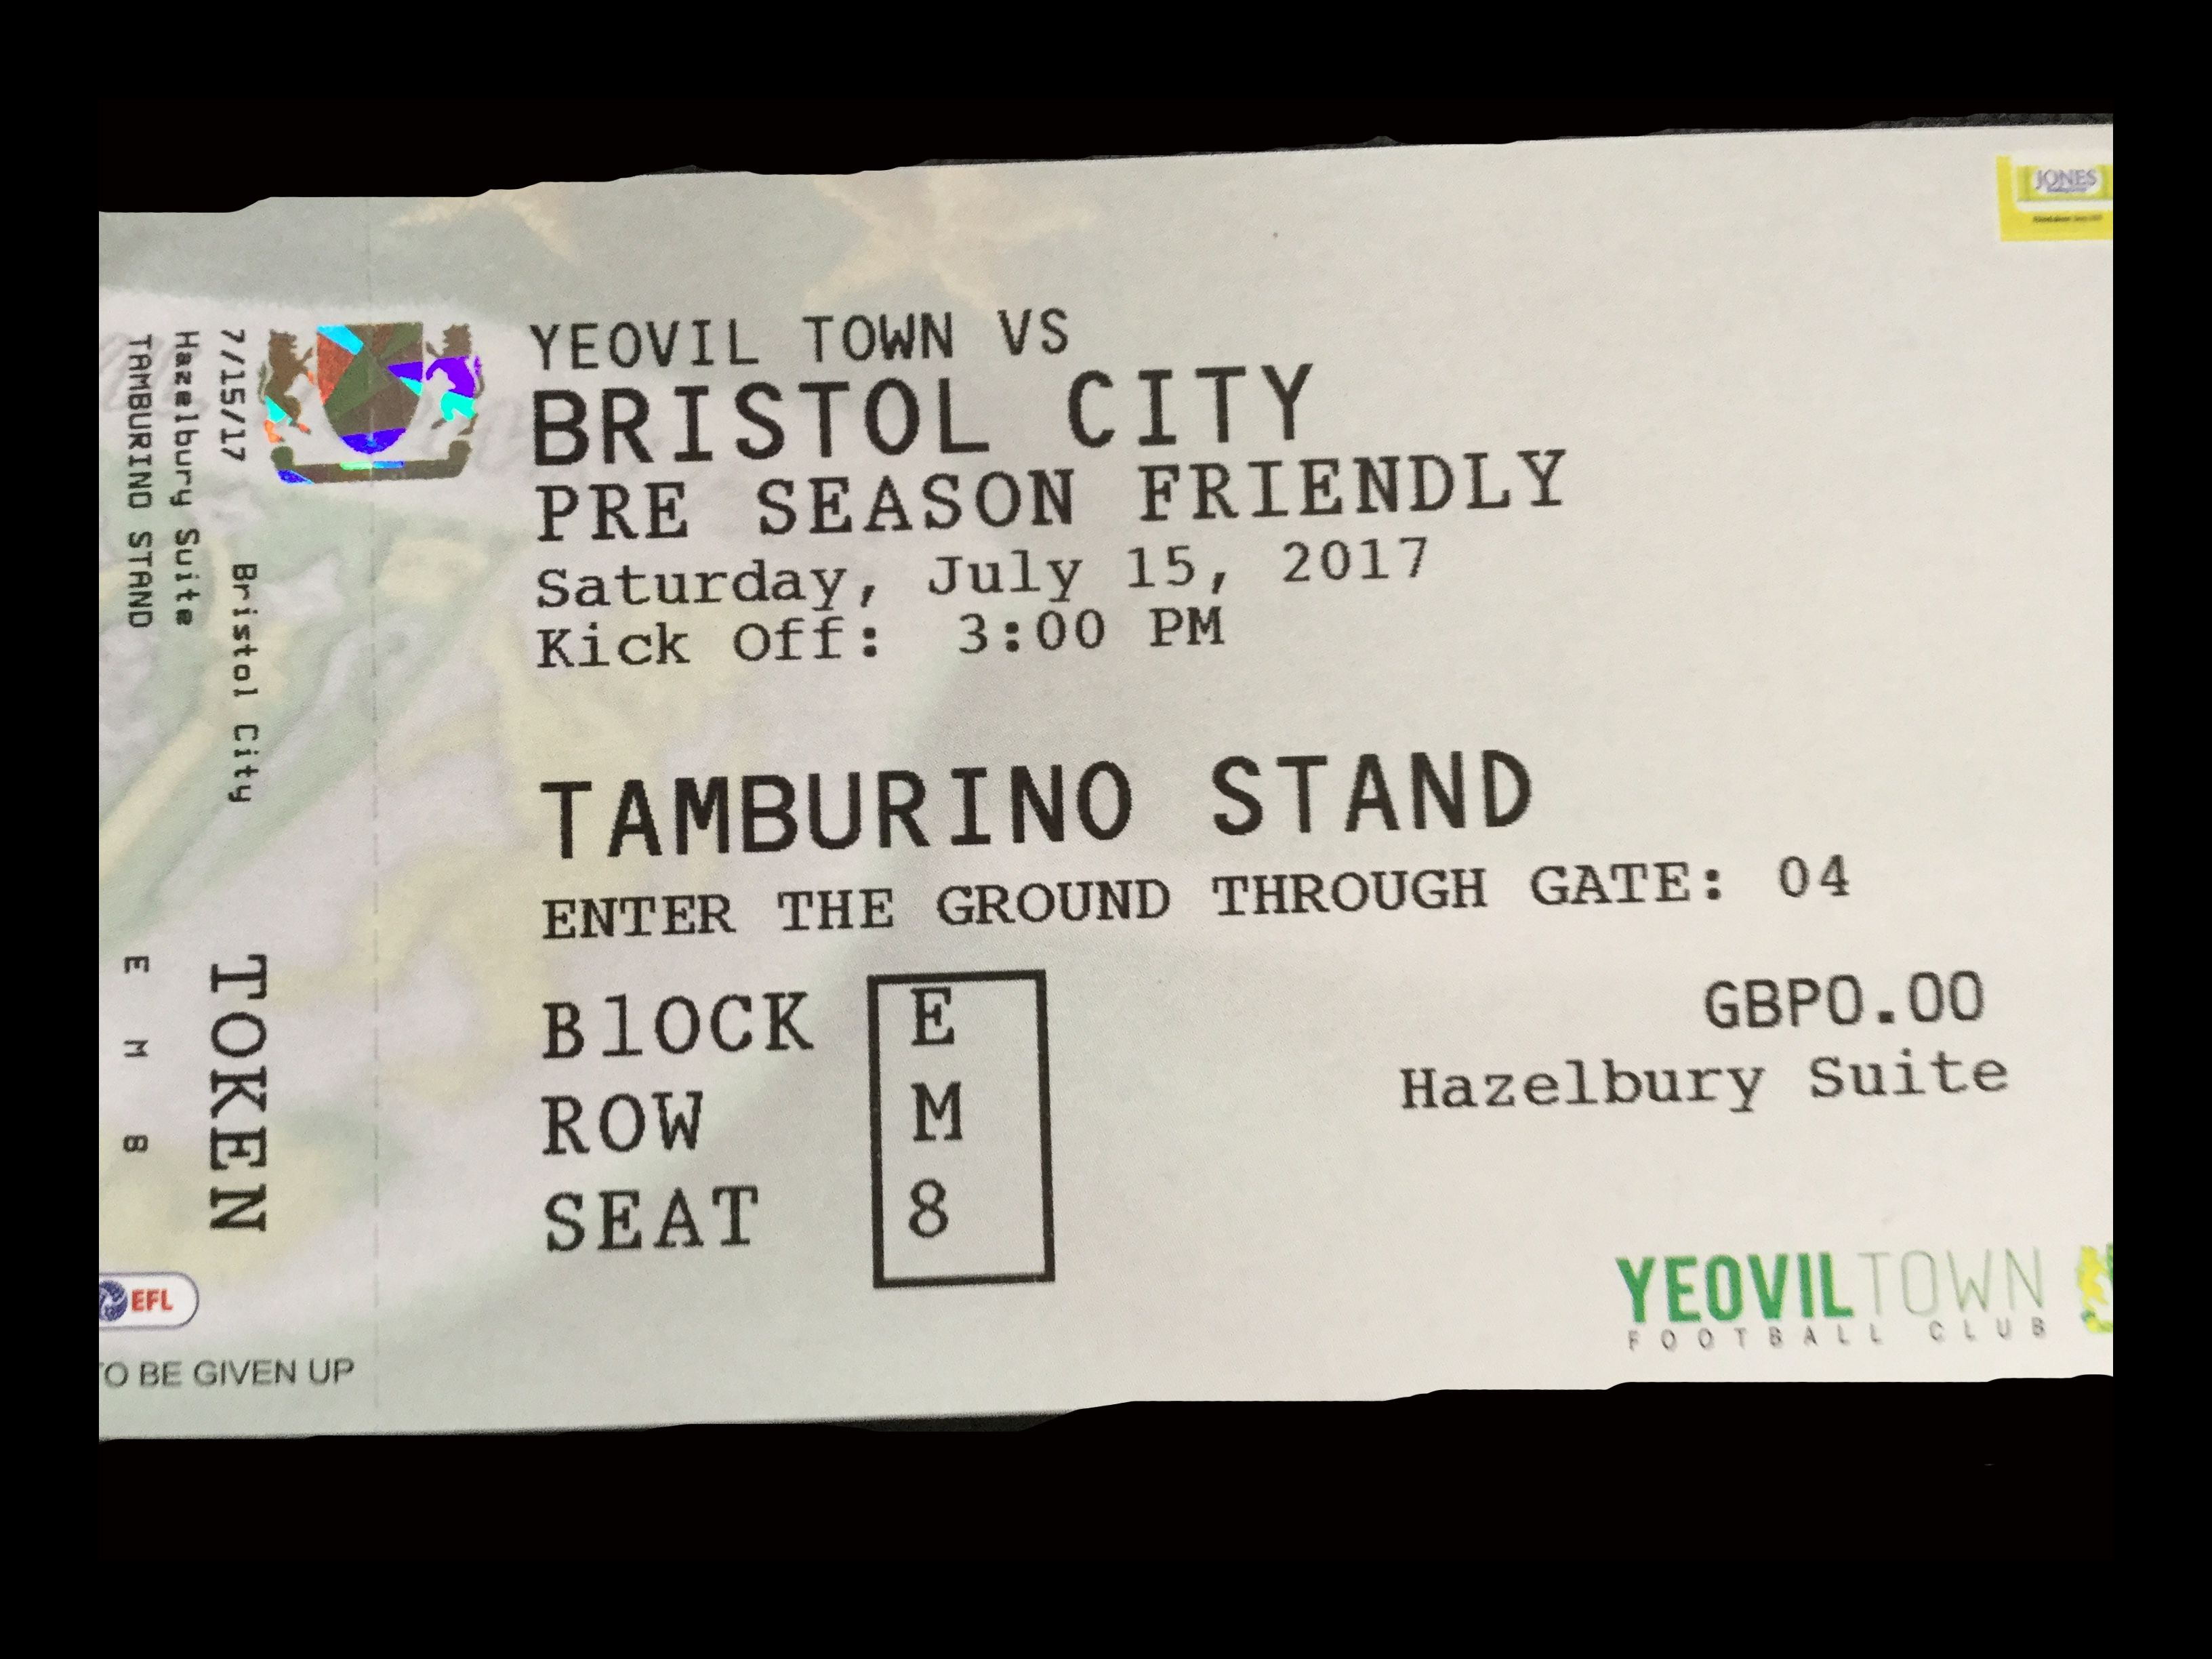 Yeovil Town v Bristol City 15-07-17 Ticket